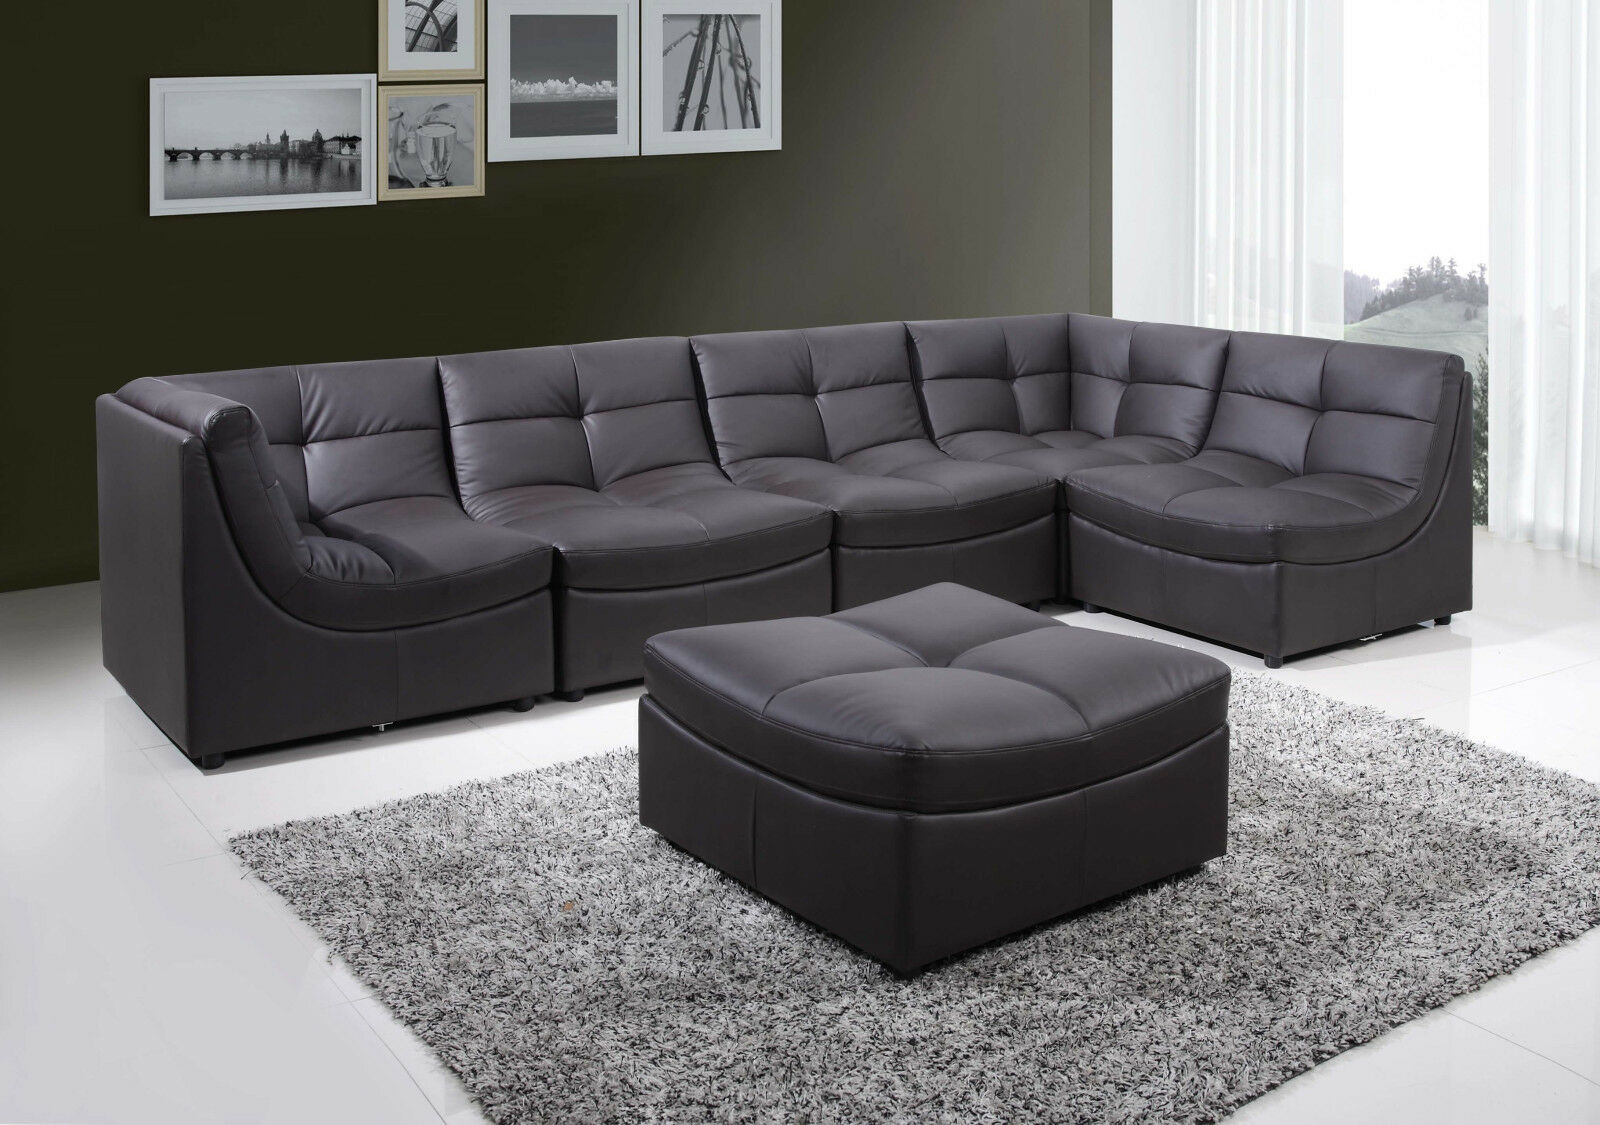 5pc modular sectional sofa bonded leather in cloud brown living room furniture